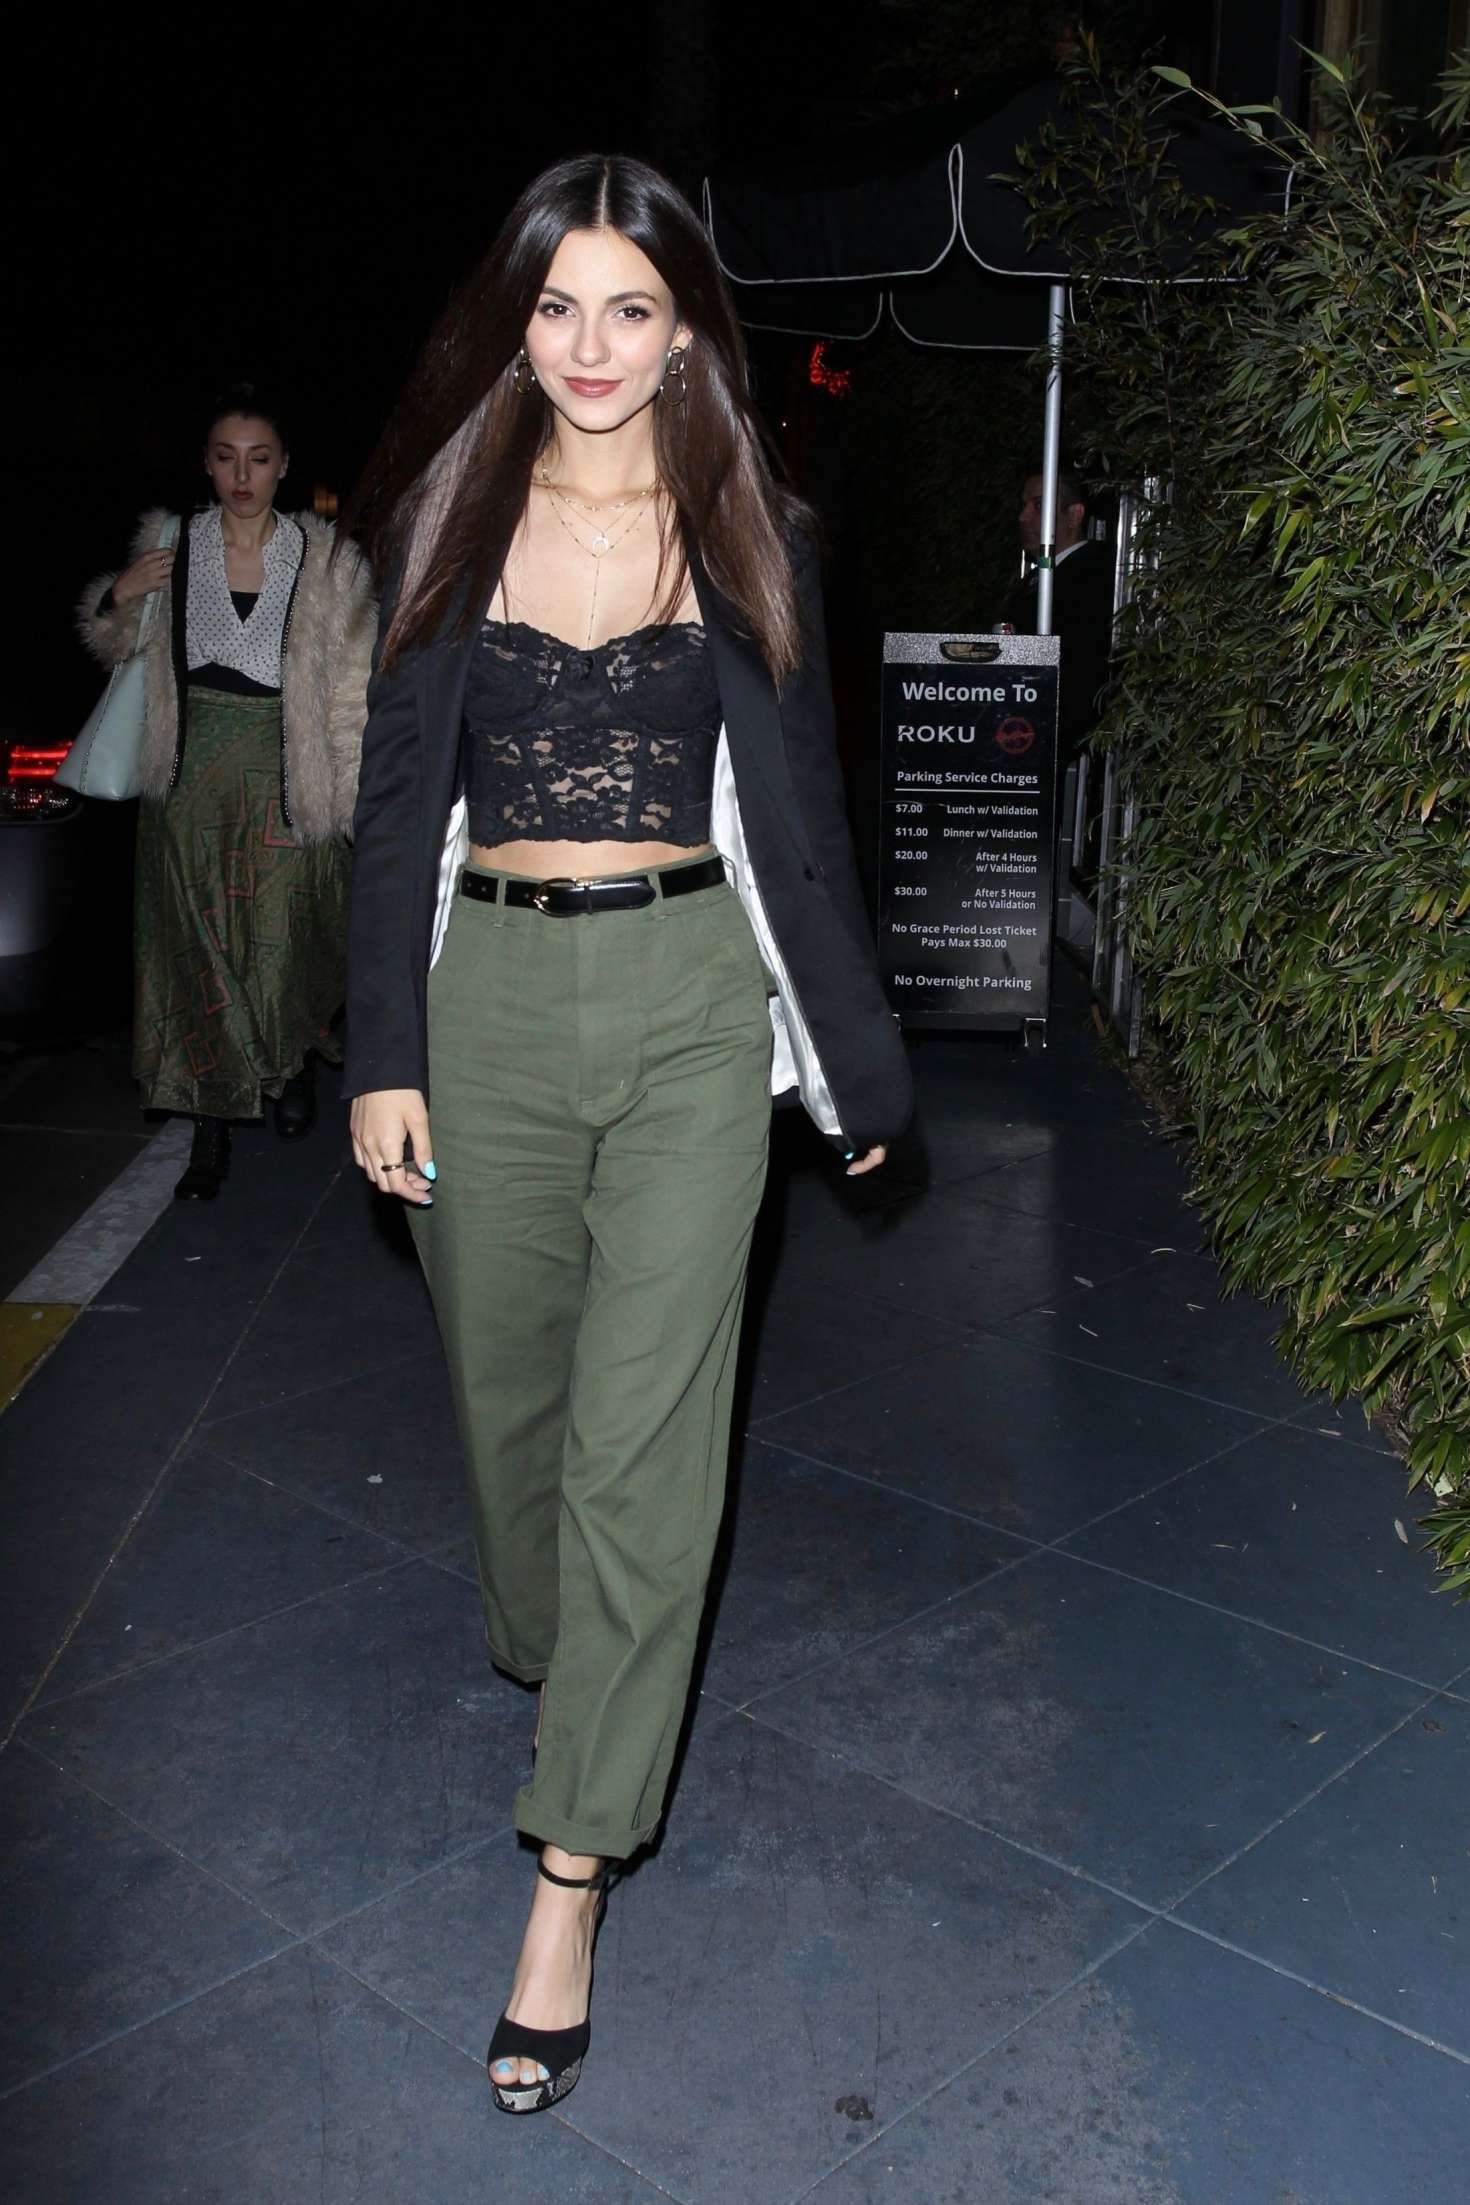 Victoria Justice in new green pants at the ROKU Sunset, 2019